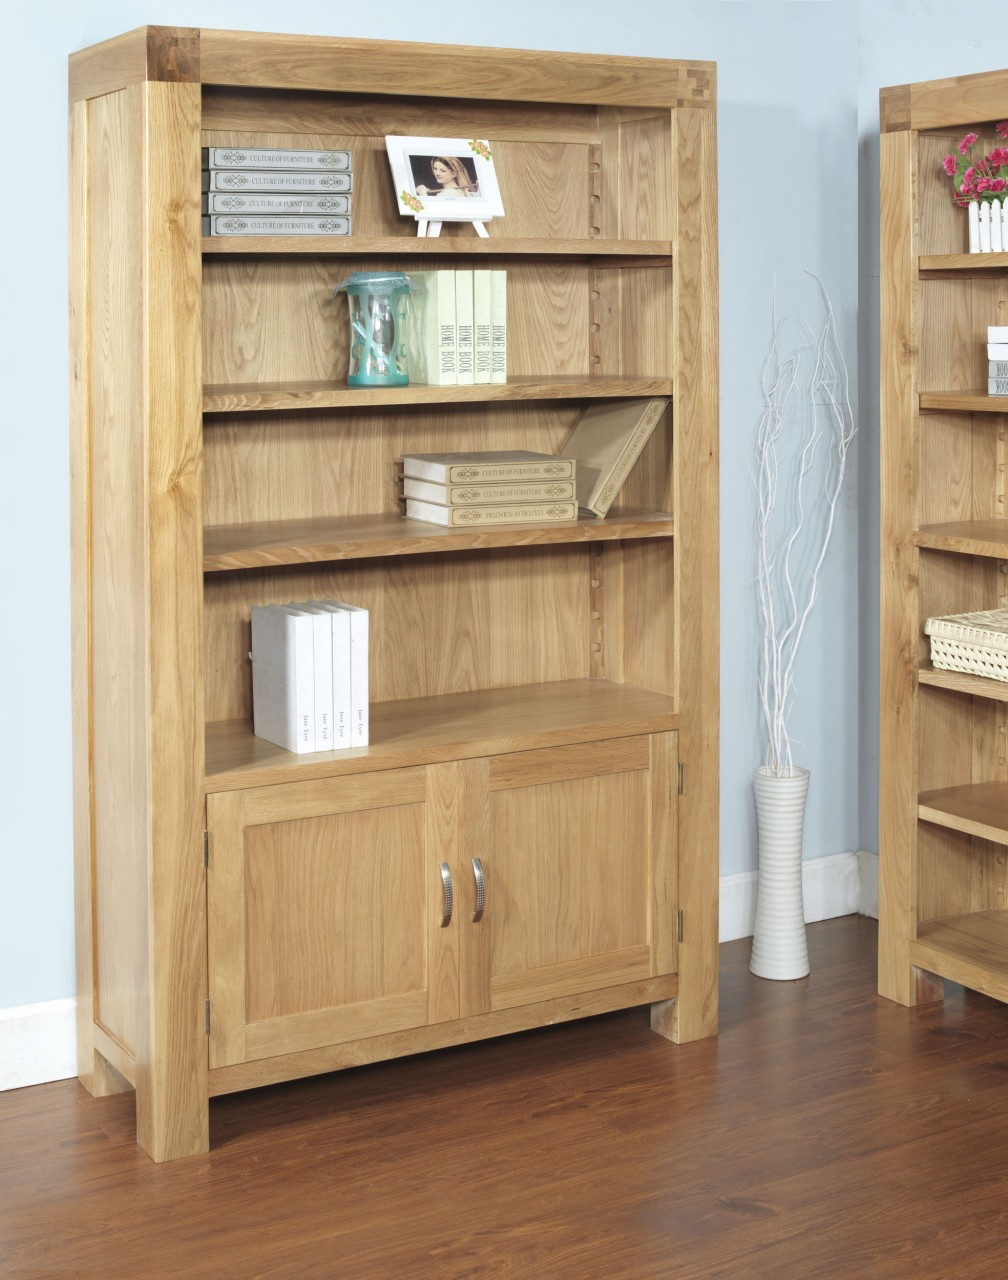 Photos of Bookcases Ideas Amish Furniture In Solid Wood solid oak bookcase